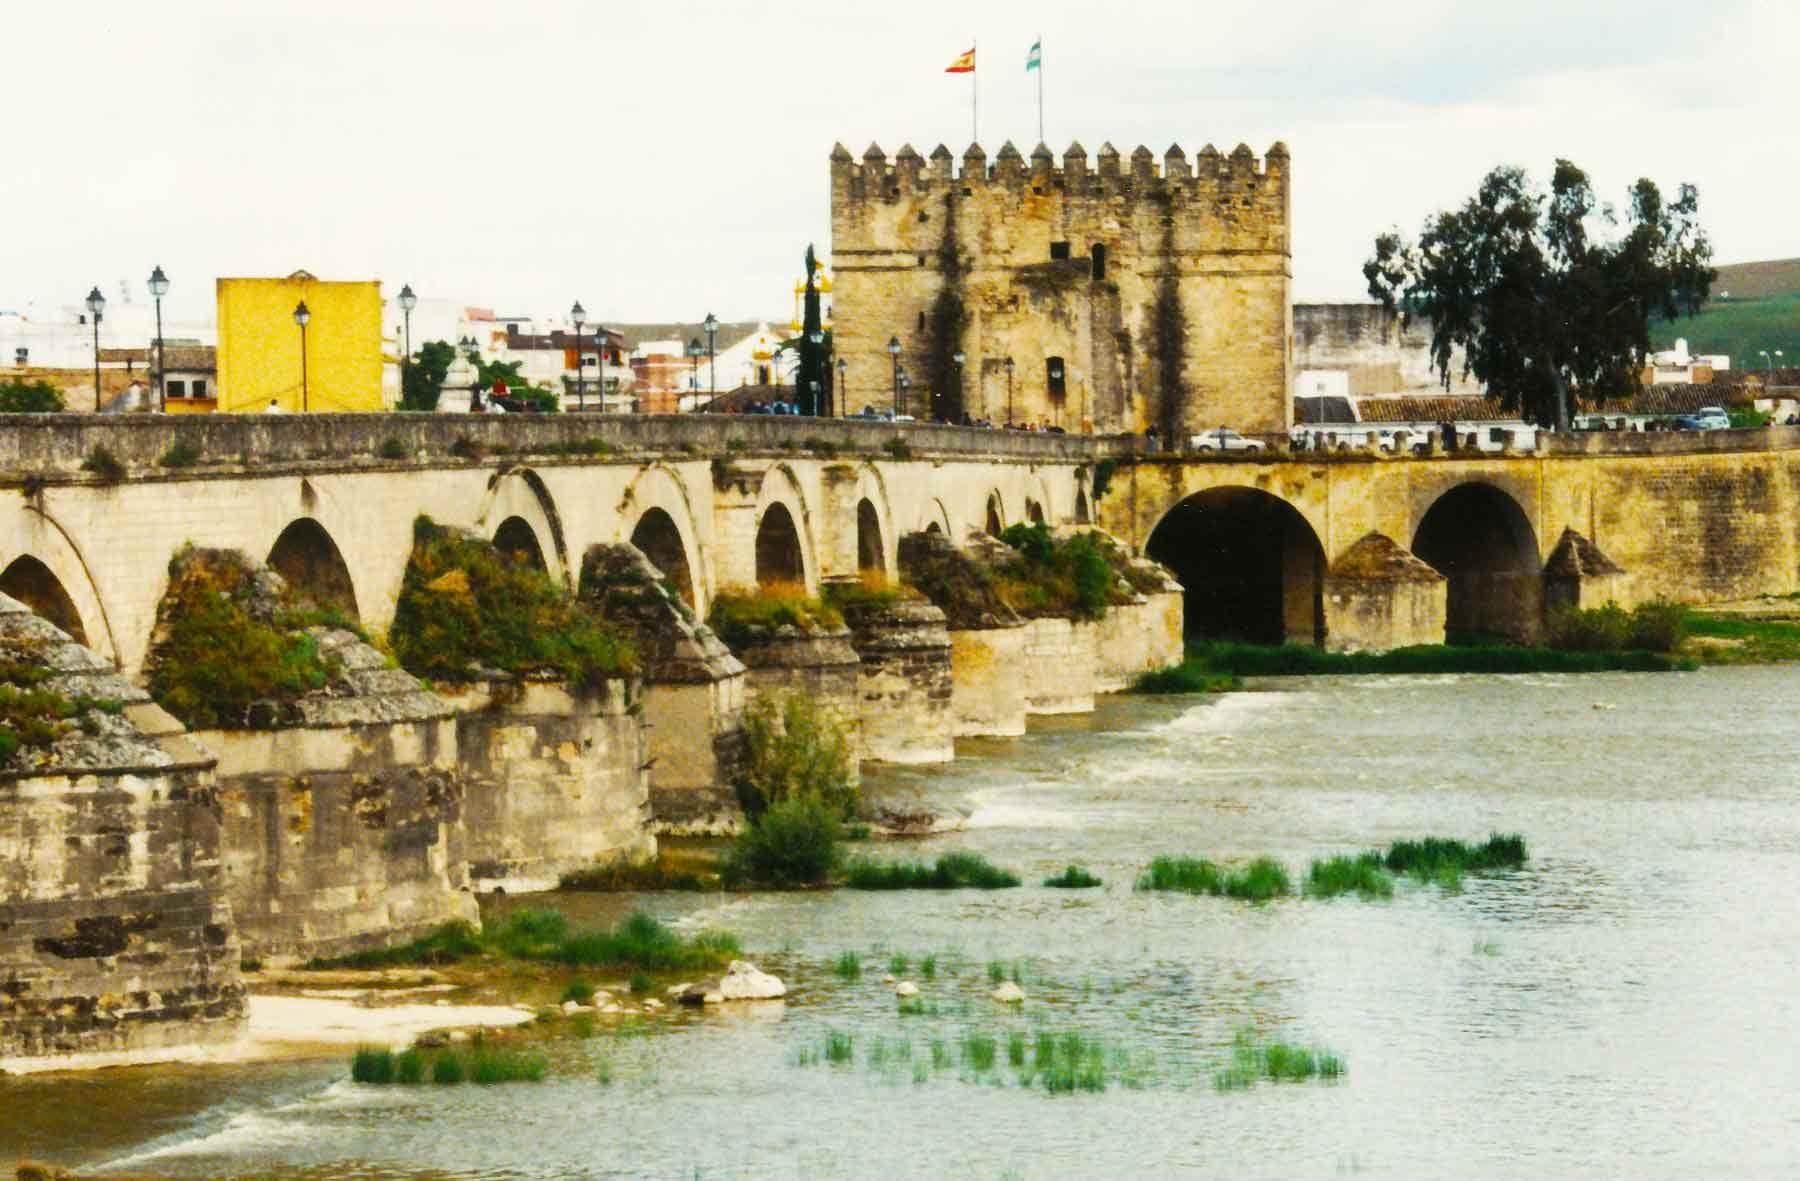 Cordoba - Roman Bridge - Spain - Steven Andrew Martin - Study Abroad Journal 1998